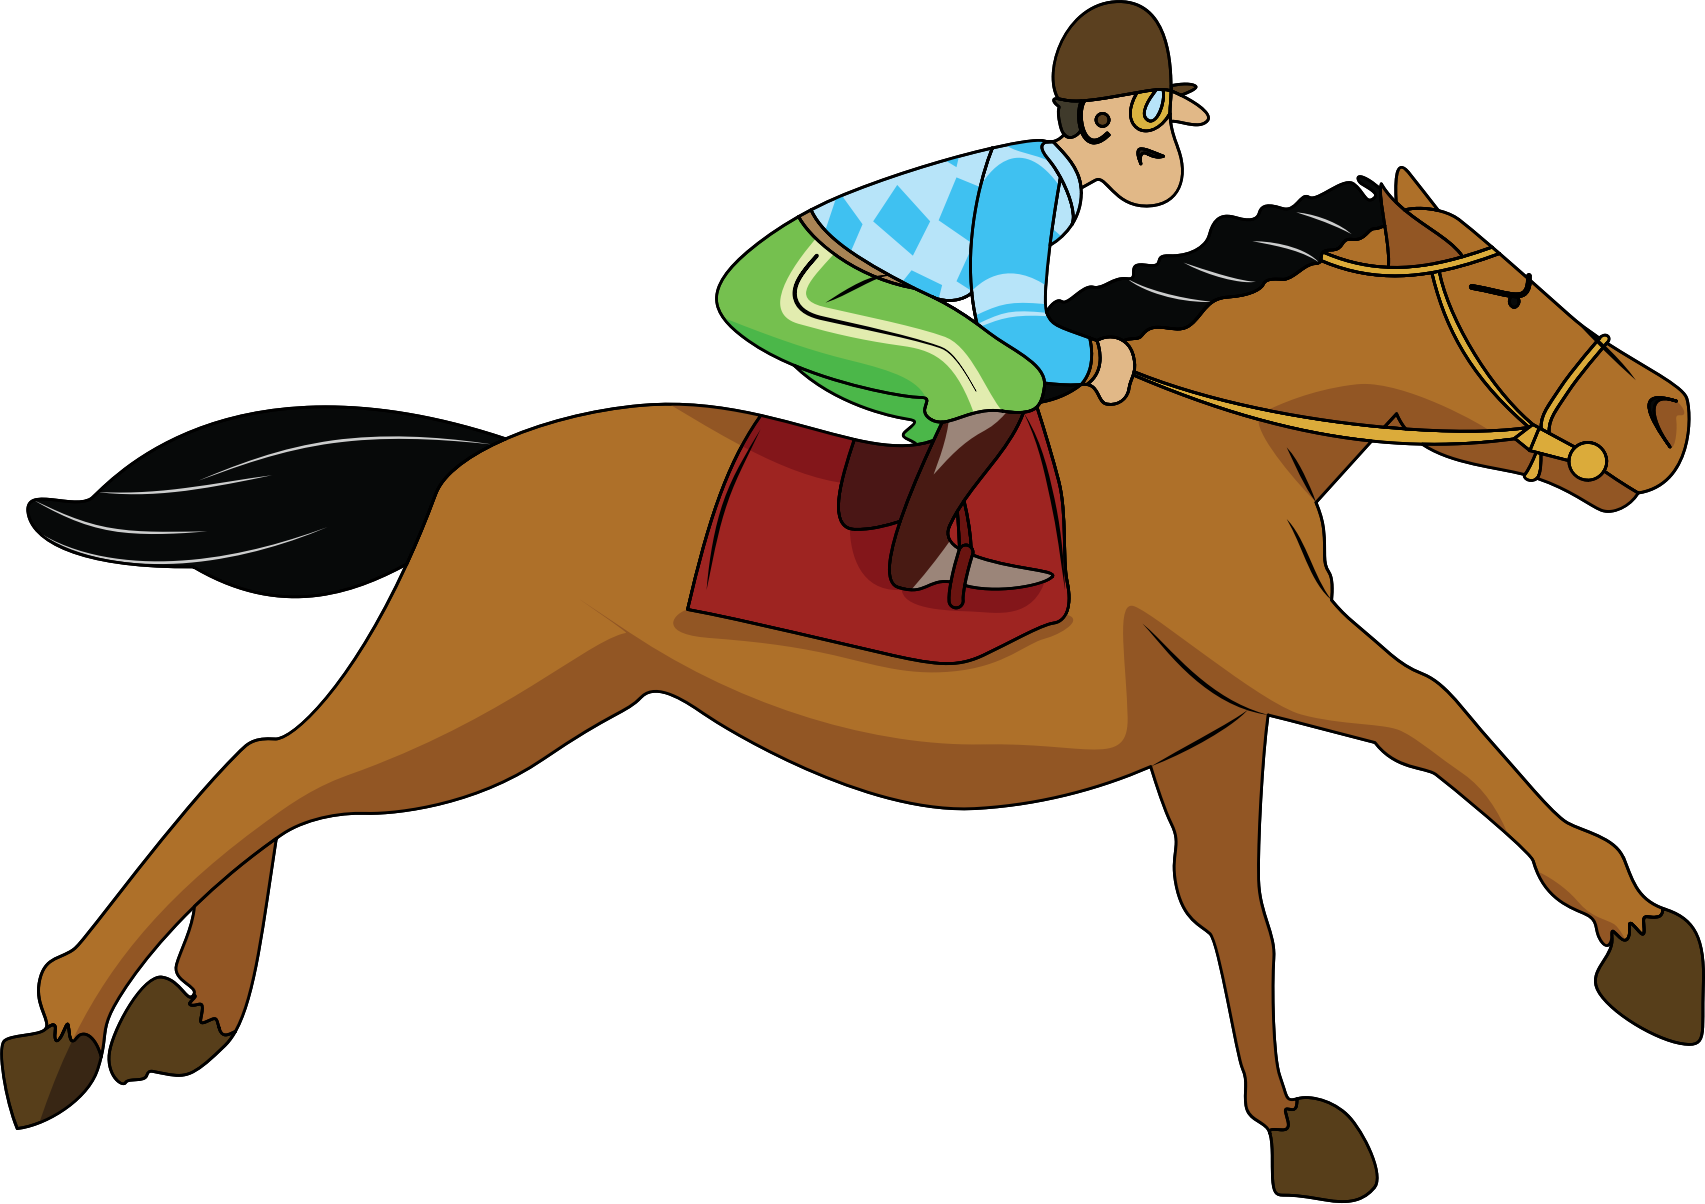 Wagon vector animated. Horse and carriage clipart